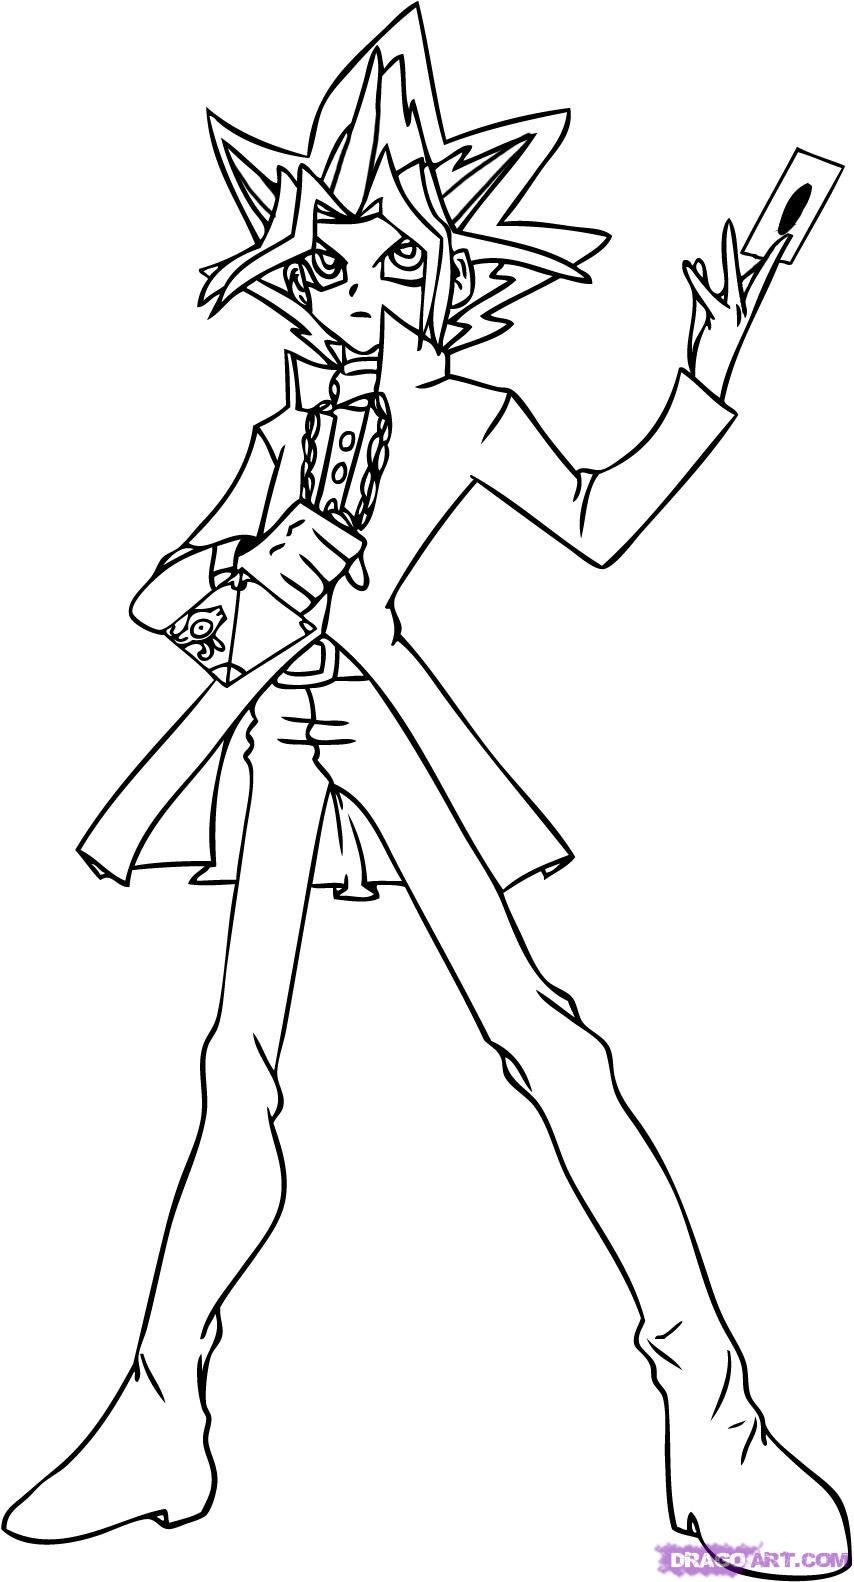 Yu Gi Oh Coloring Page Coloring Pages Coloring Pages To Print Cartoon Coloring Pages